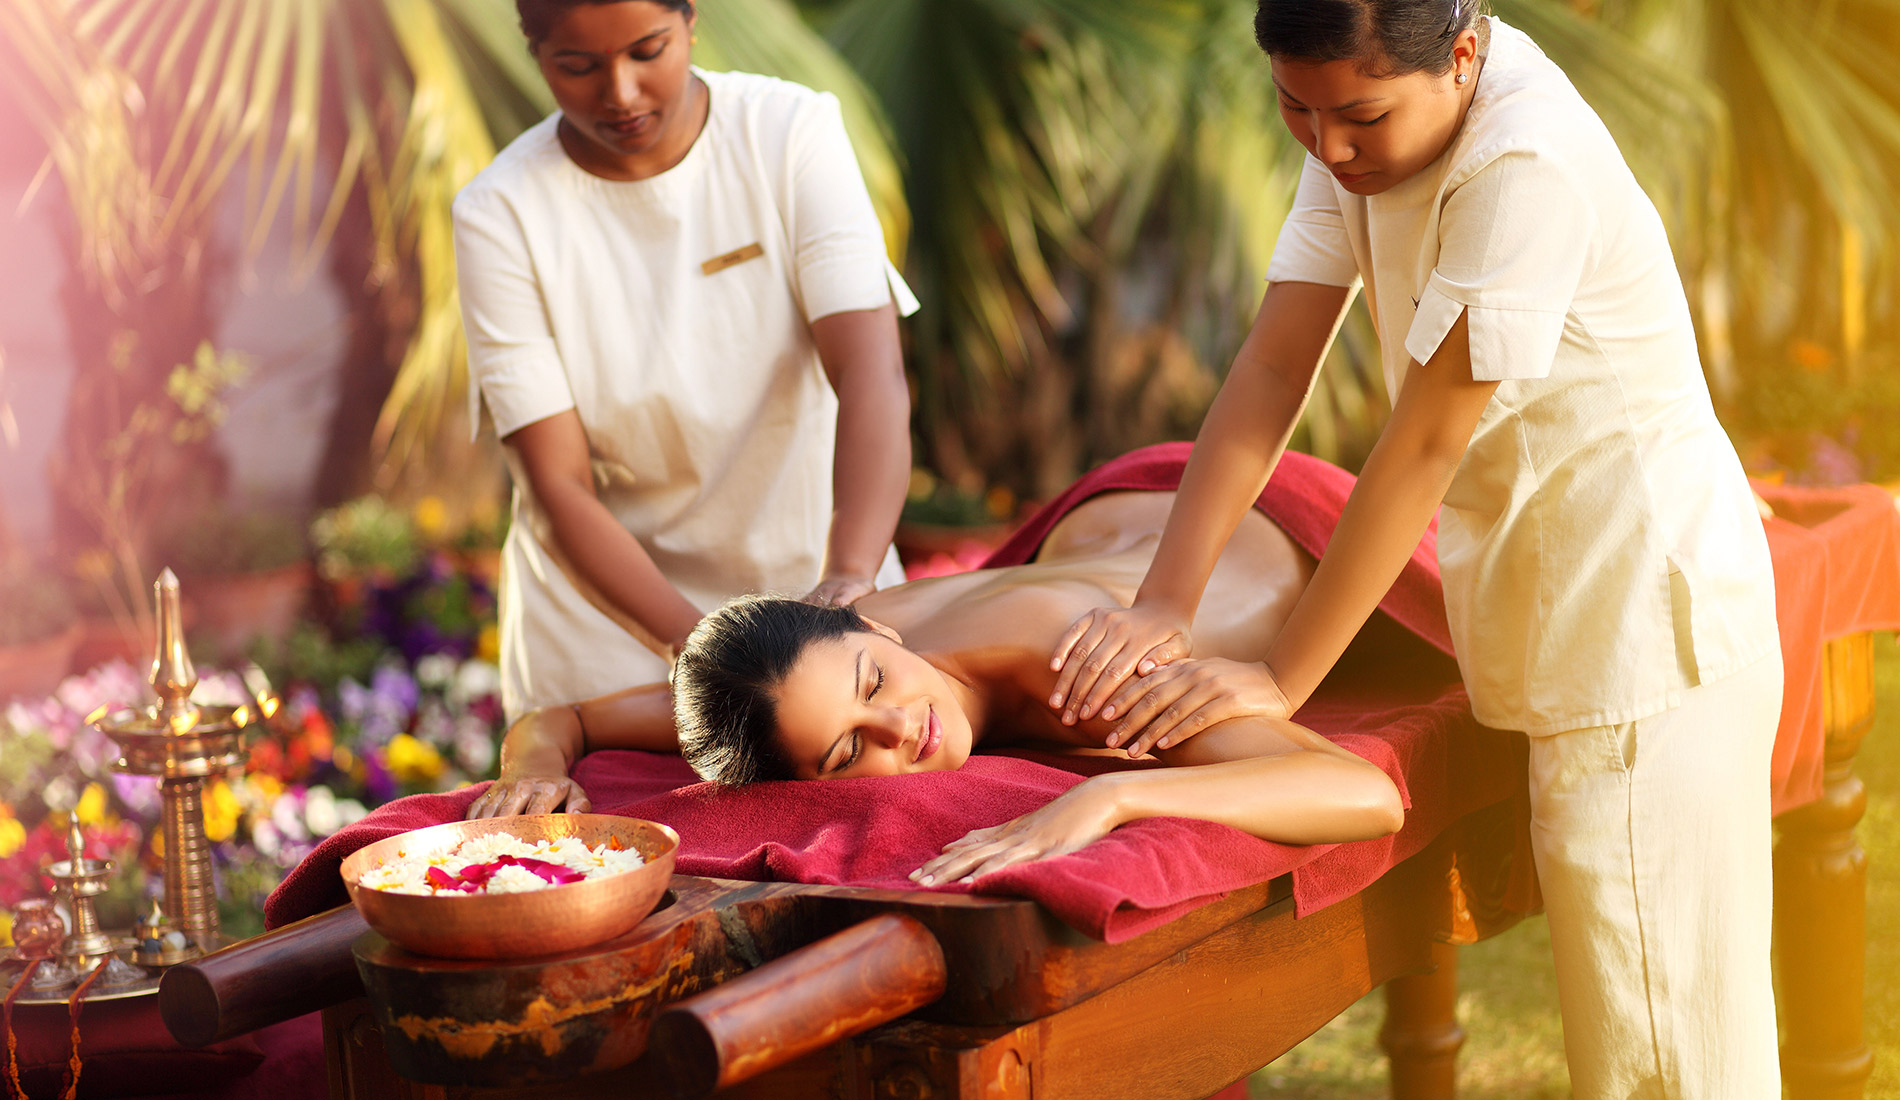 hotel yoga wellness Ananda in the Himalayas 5 stars Uttarakhand India massage